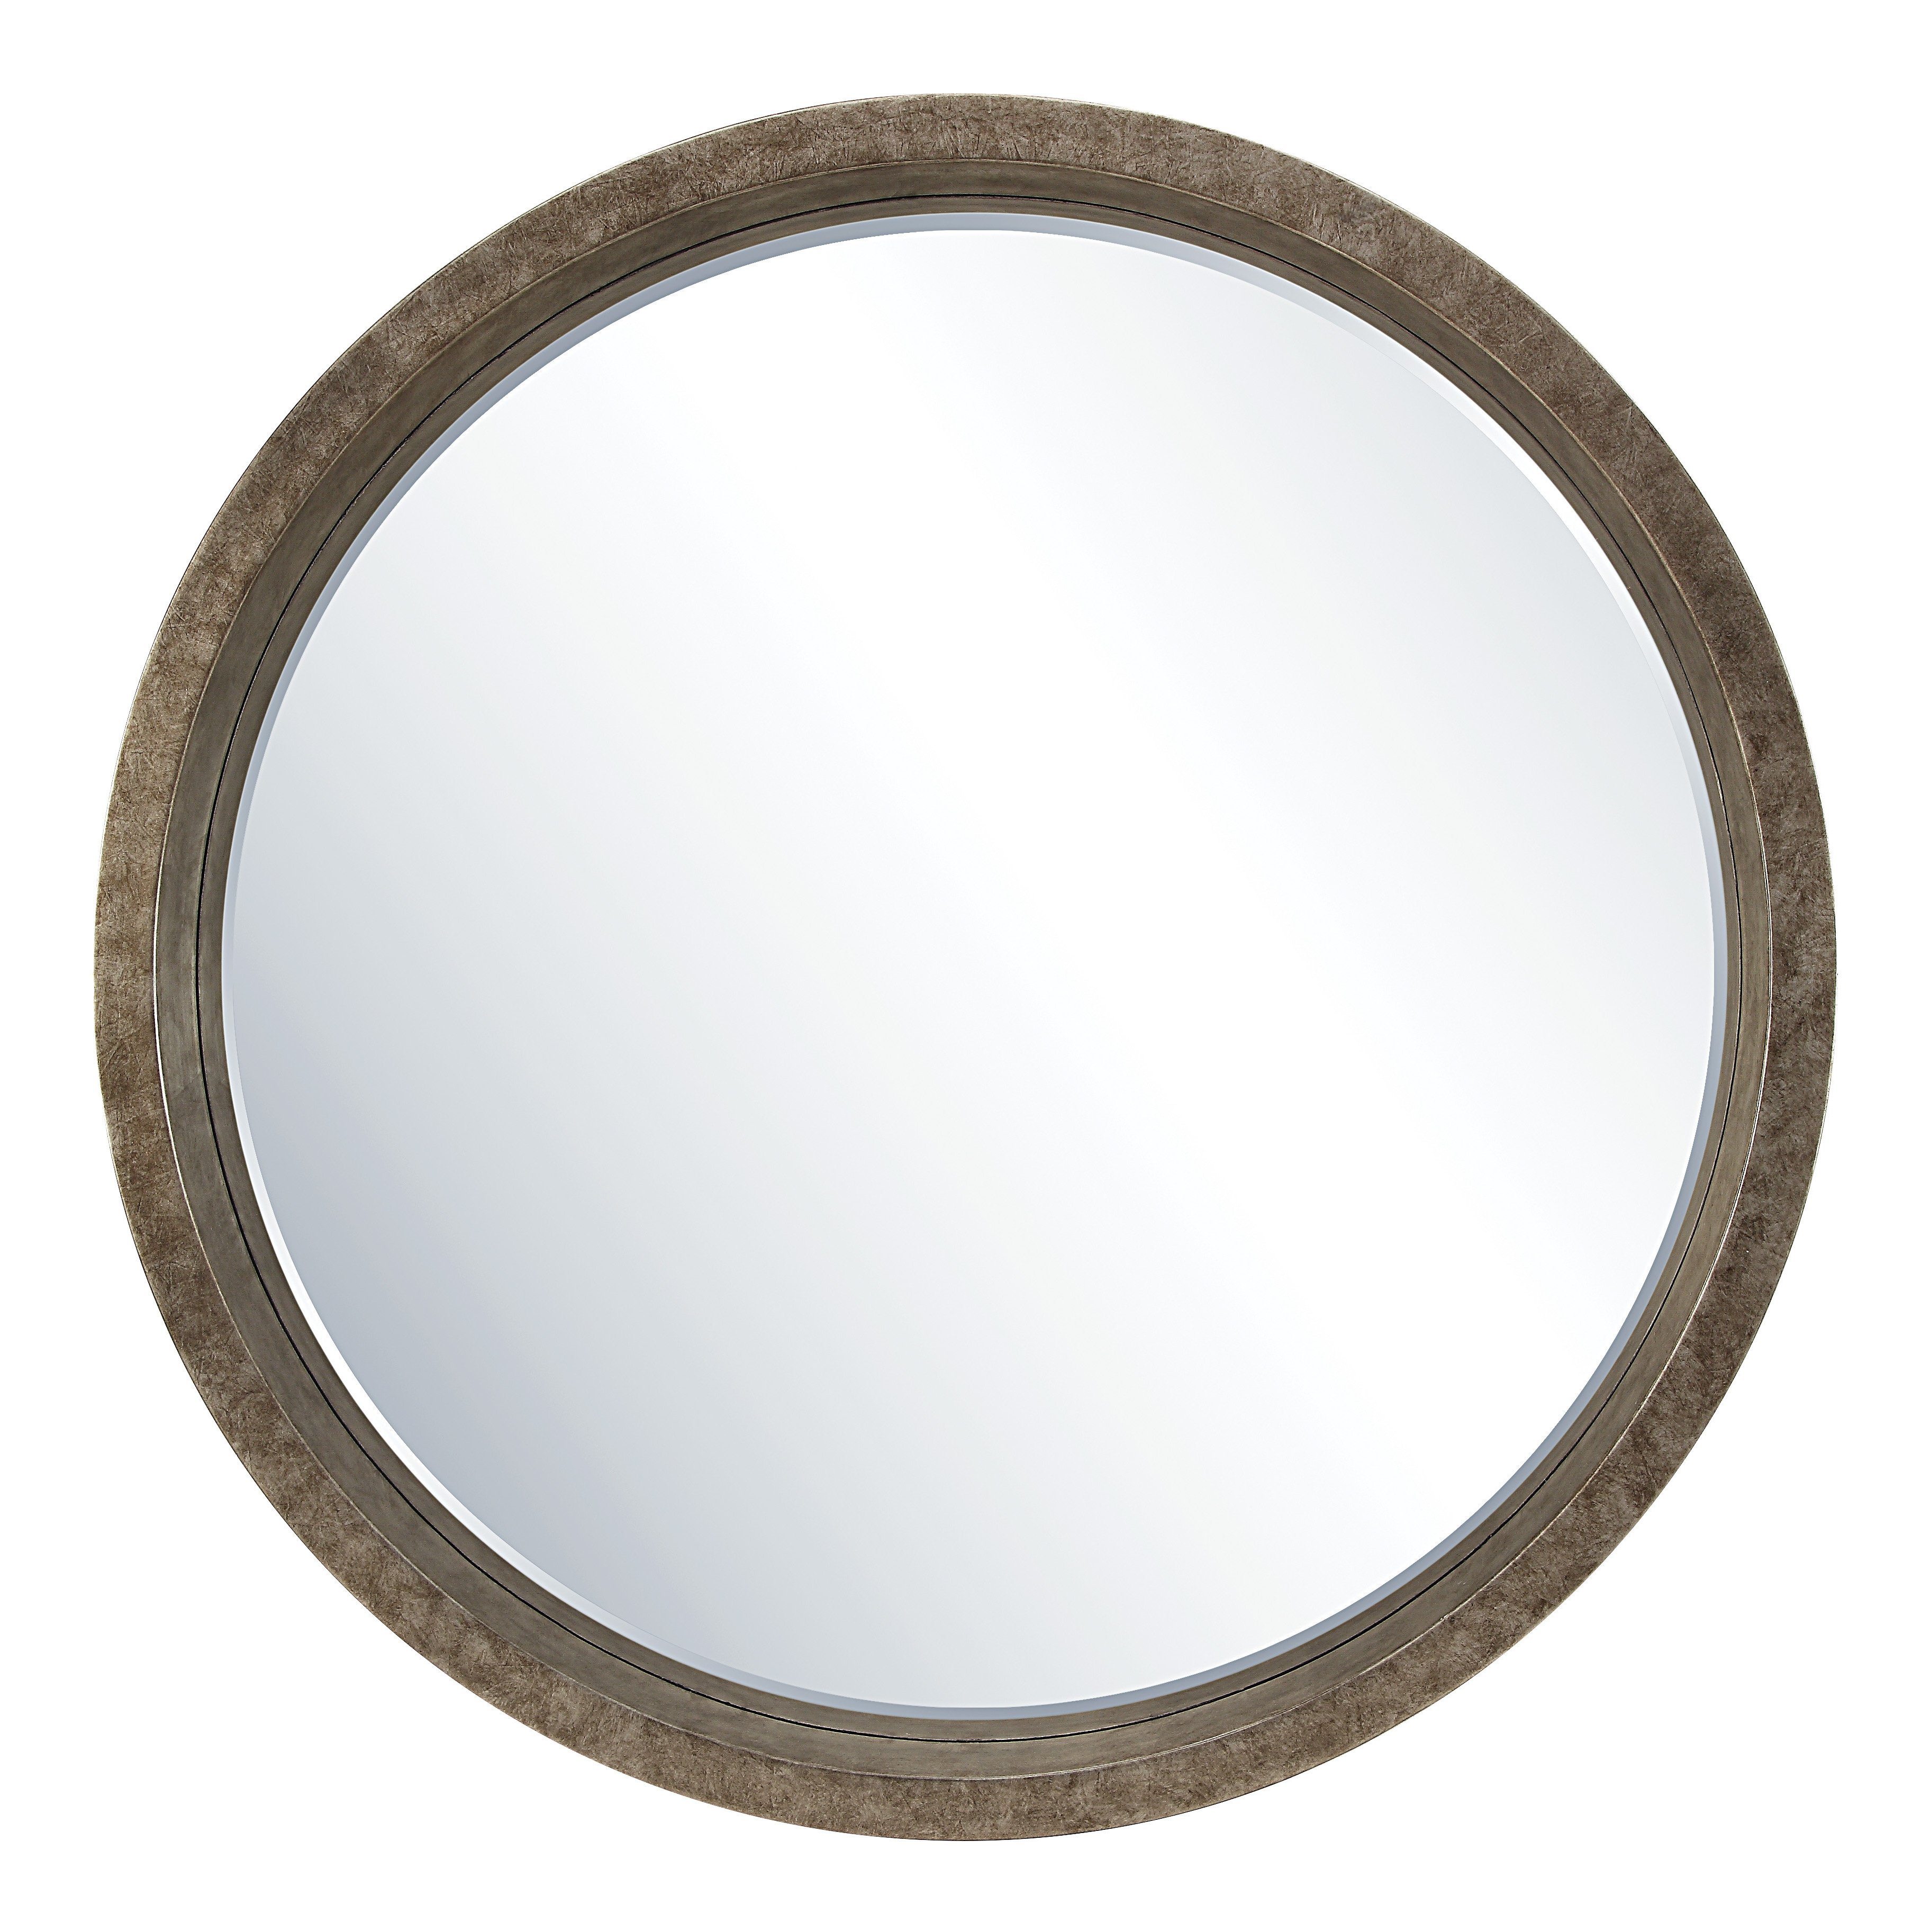 Rennes Modern & Contemporary Beveled Wall Mirror Intended For Trendy Modern & Contemporary Beveled Overmantel Mirrors (Gallery 13 of 20)